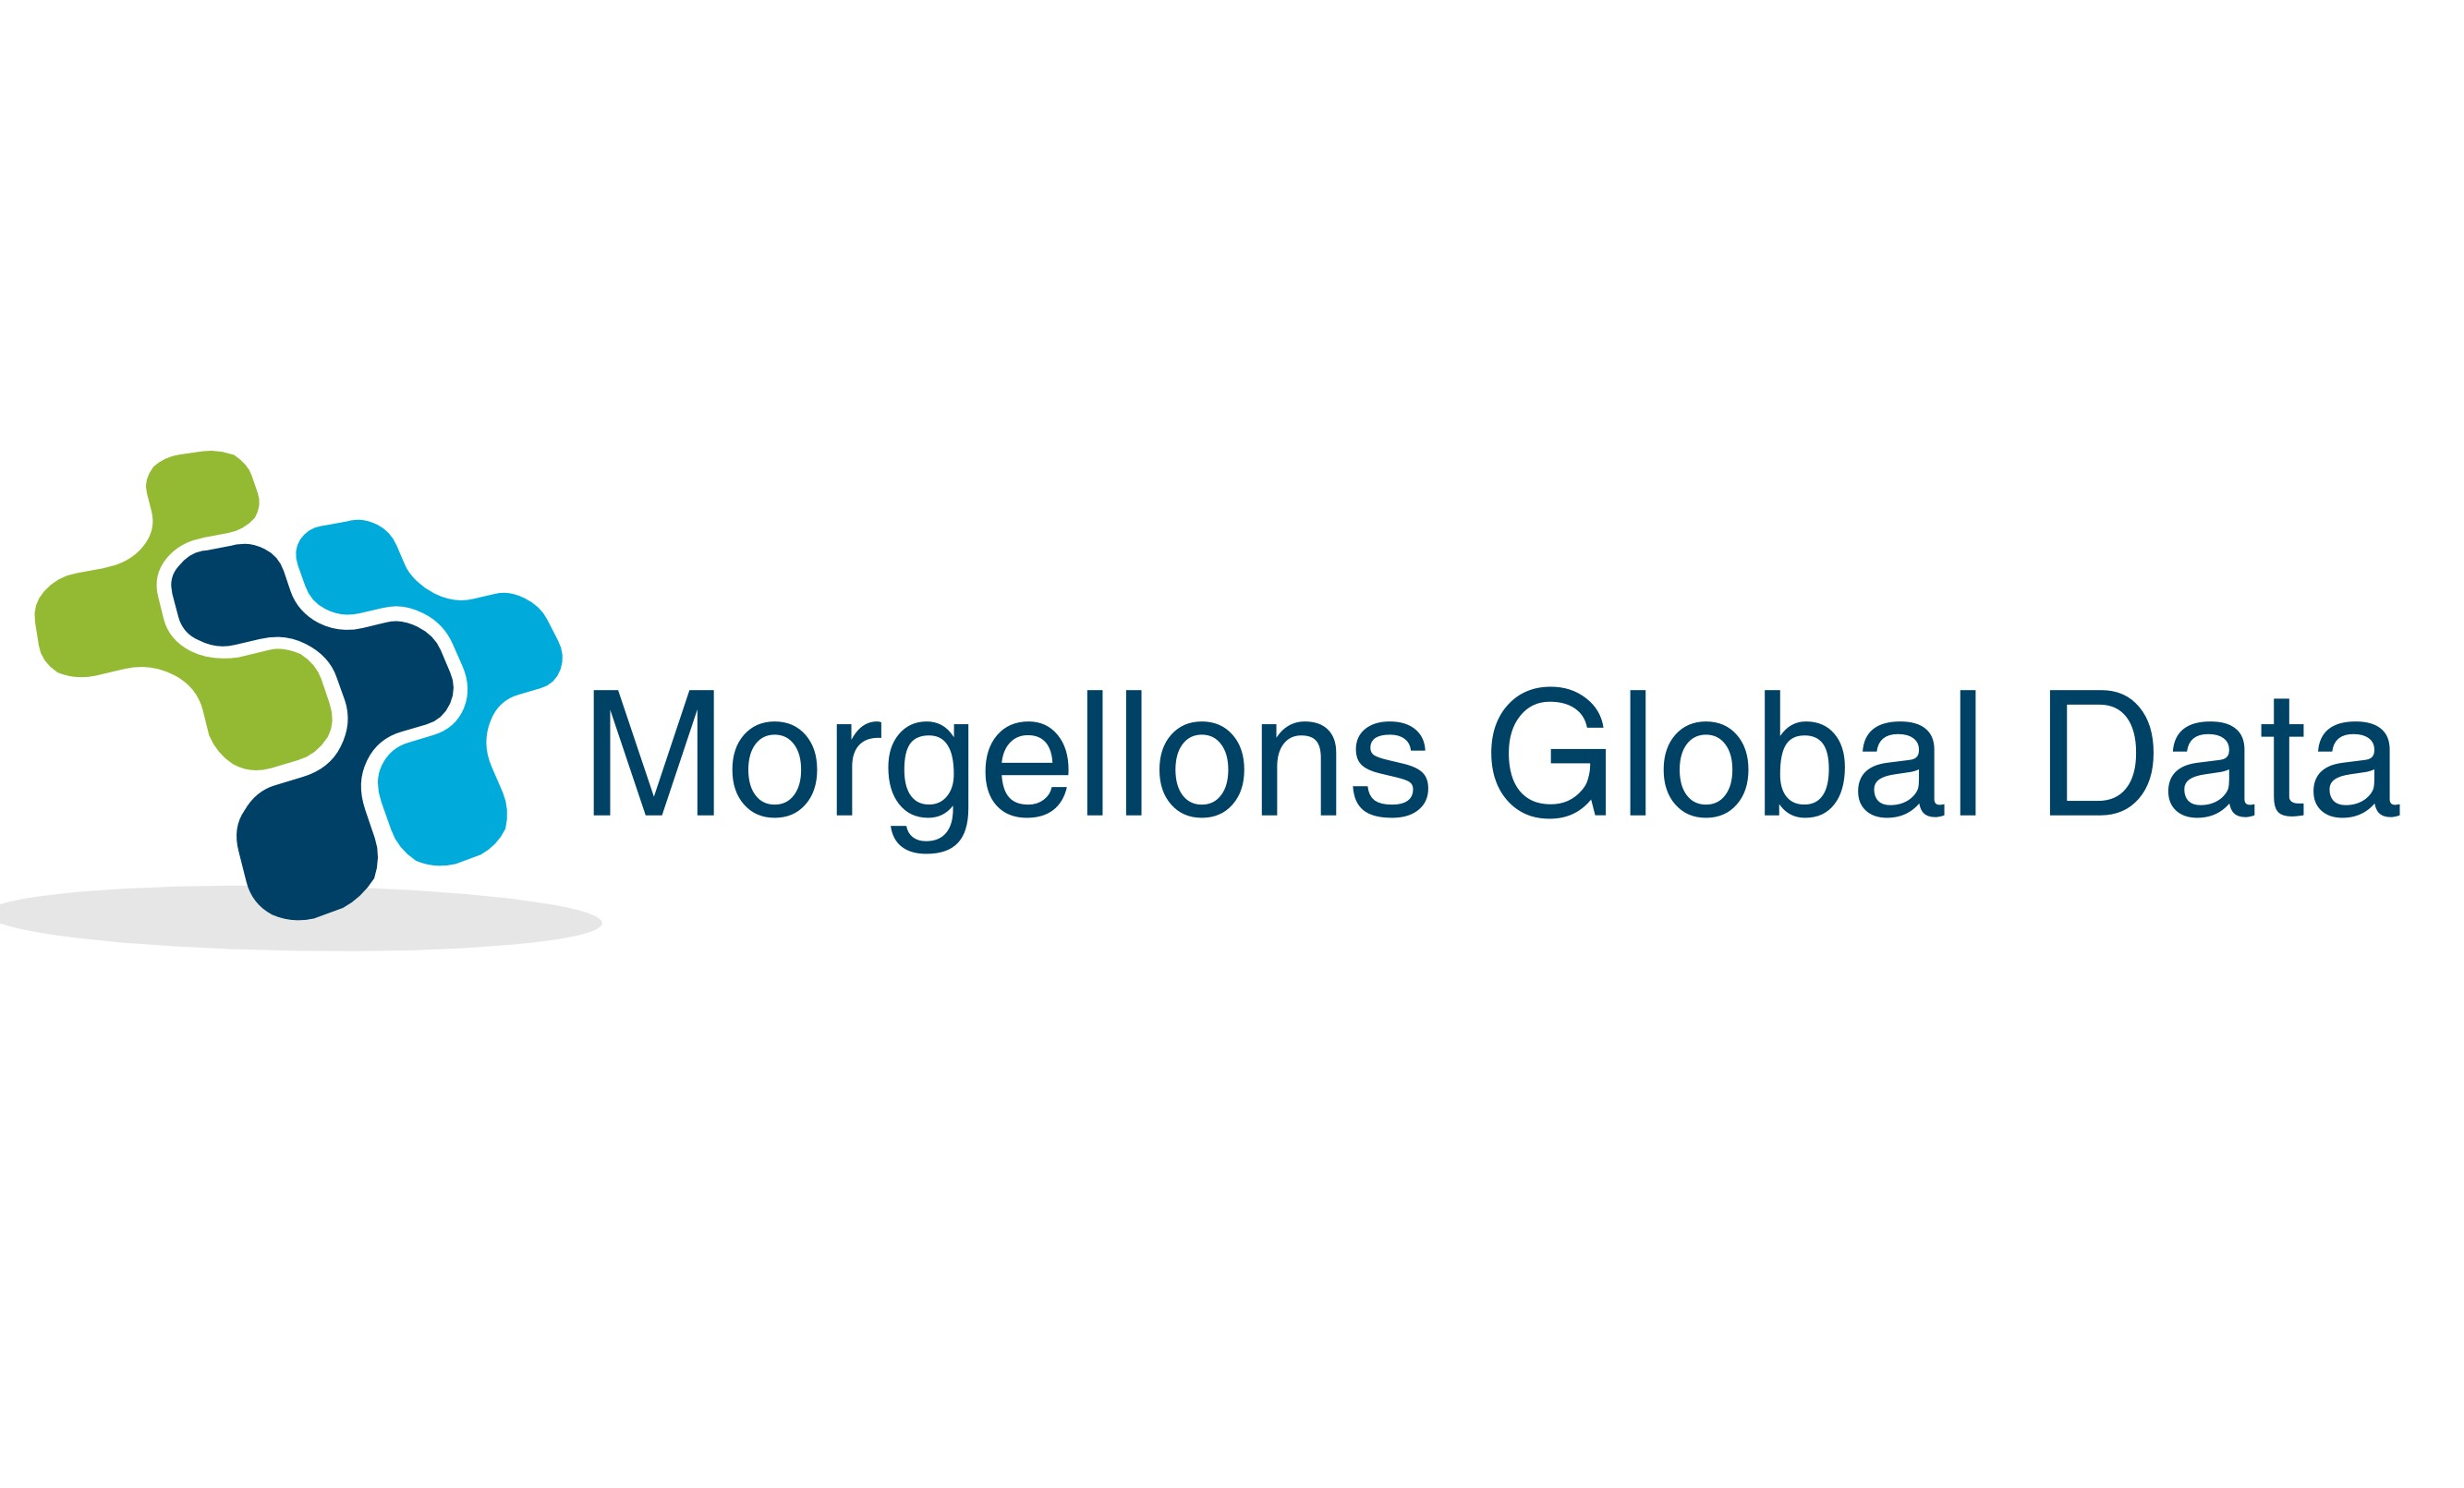 Morgellons Global Data